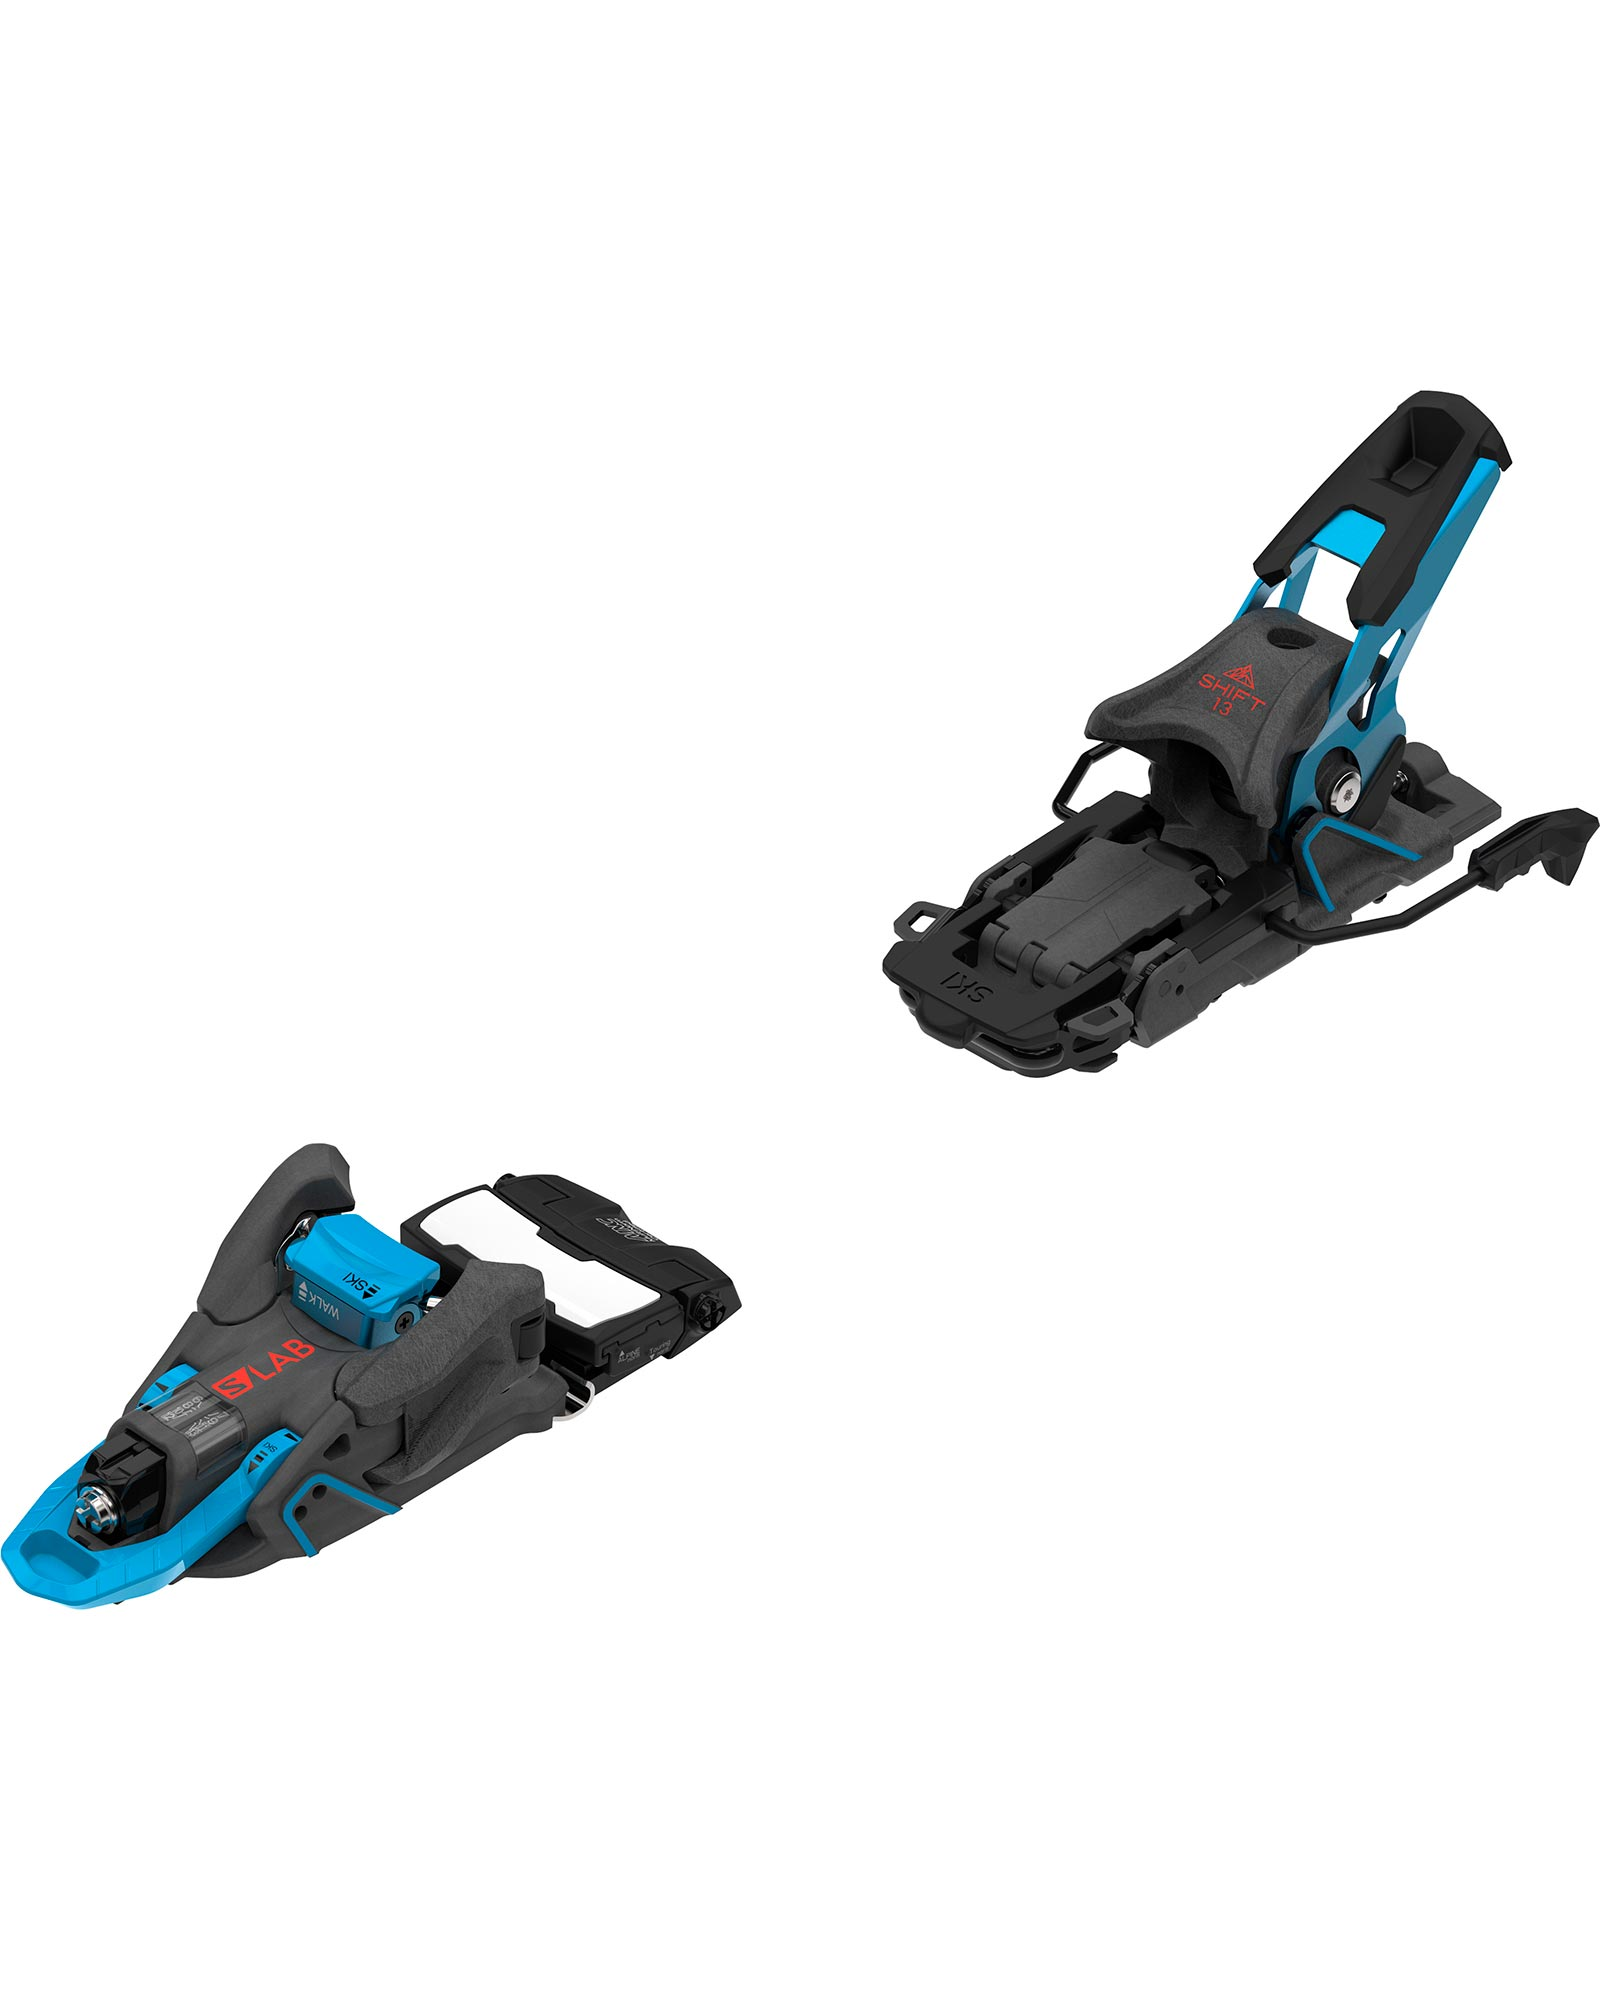 Salomon S/LAB Shift MNC 13 110mm Backcountry Ski Bindings 2020 / 2021 0